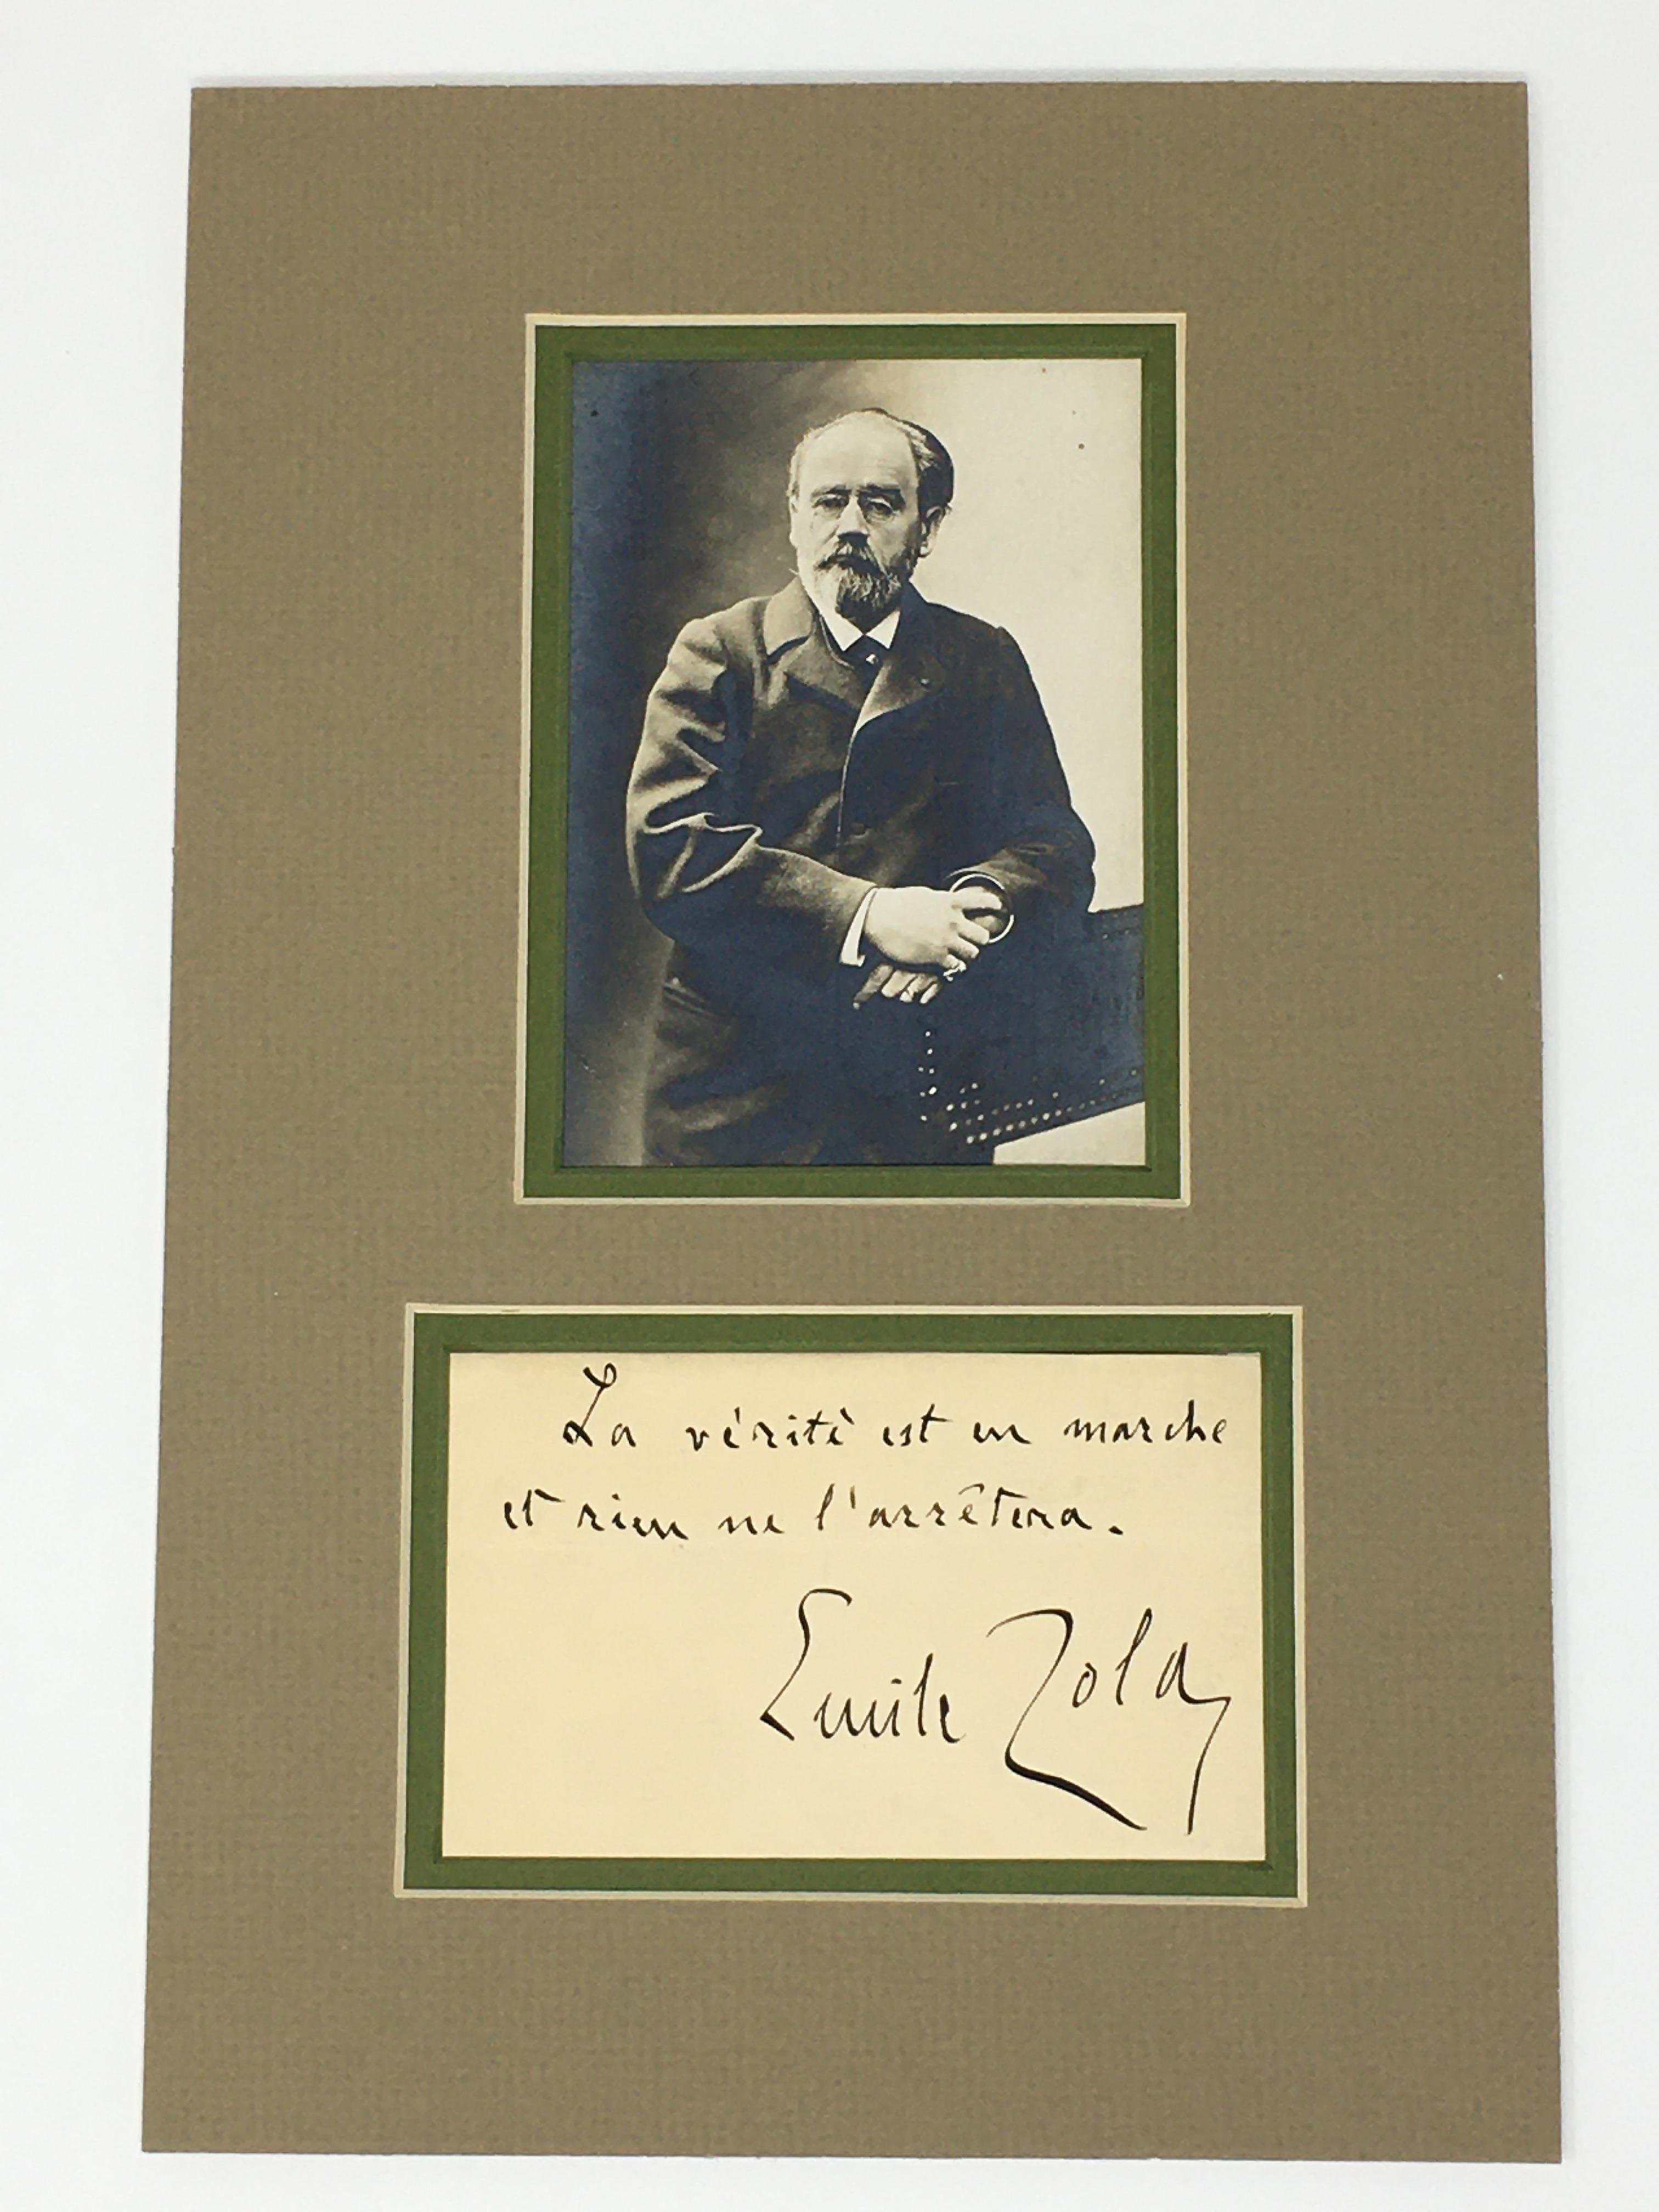 J'Accuse Newspaper, Emile Zola Quote, Signed Dreyfus Portrait, Rare Trial Drawings & Schwartzkoppen - Image 5 of 74